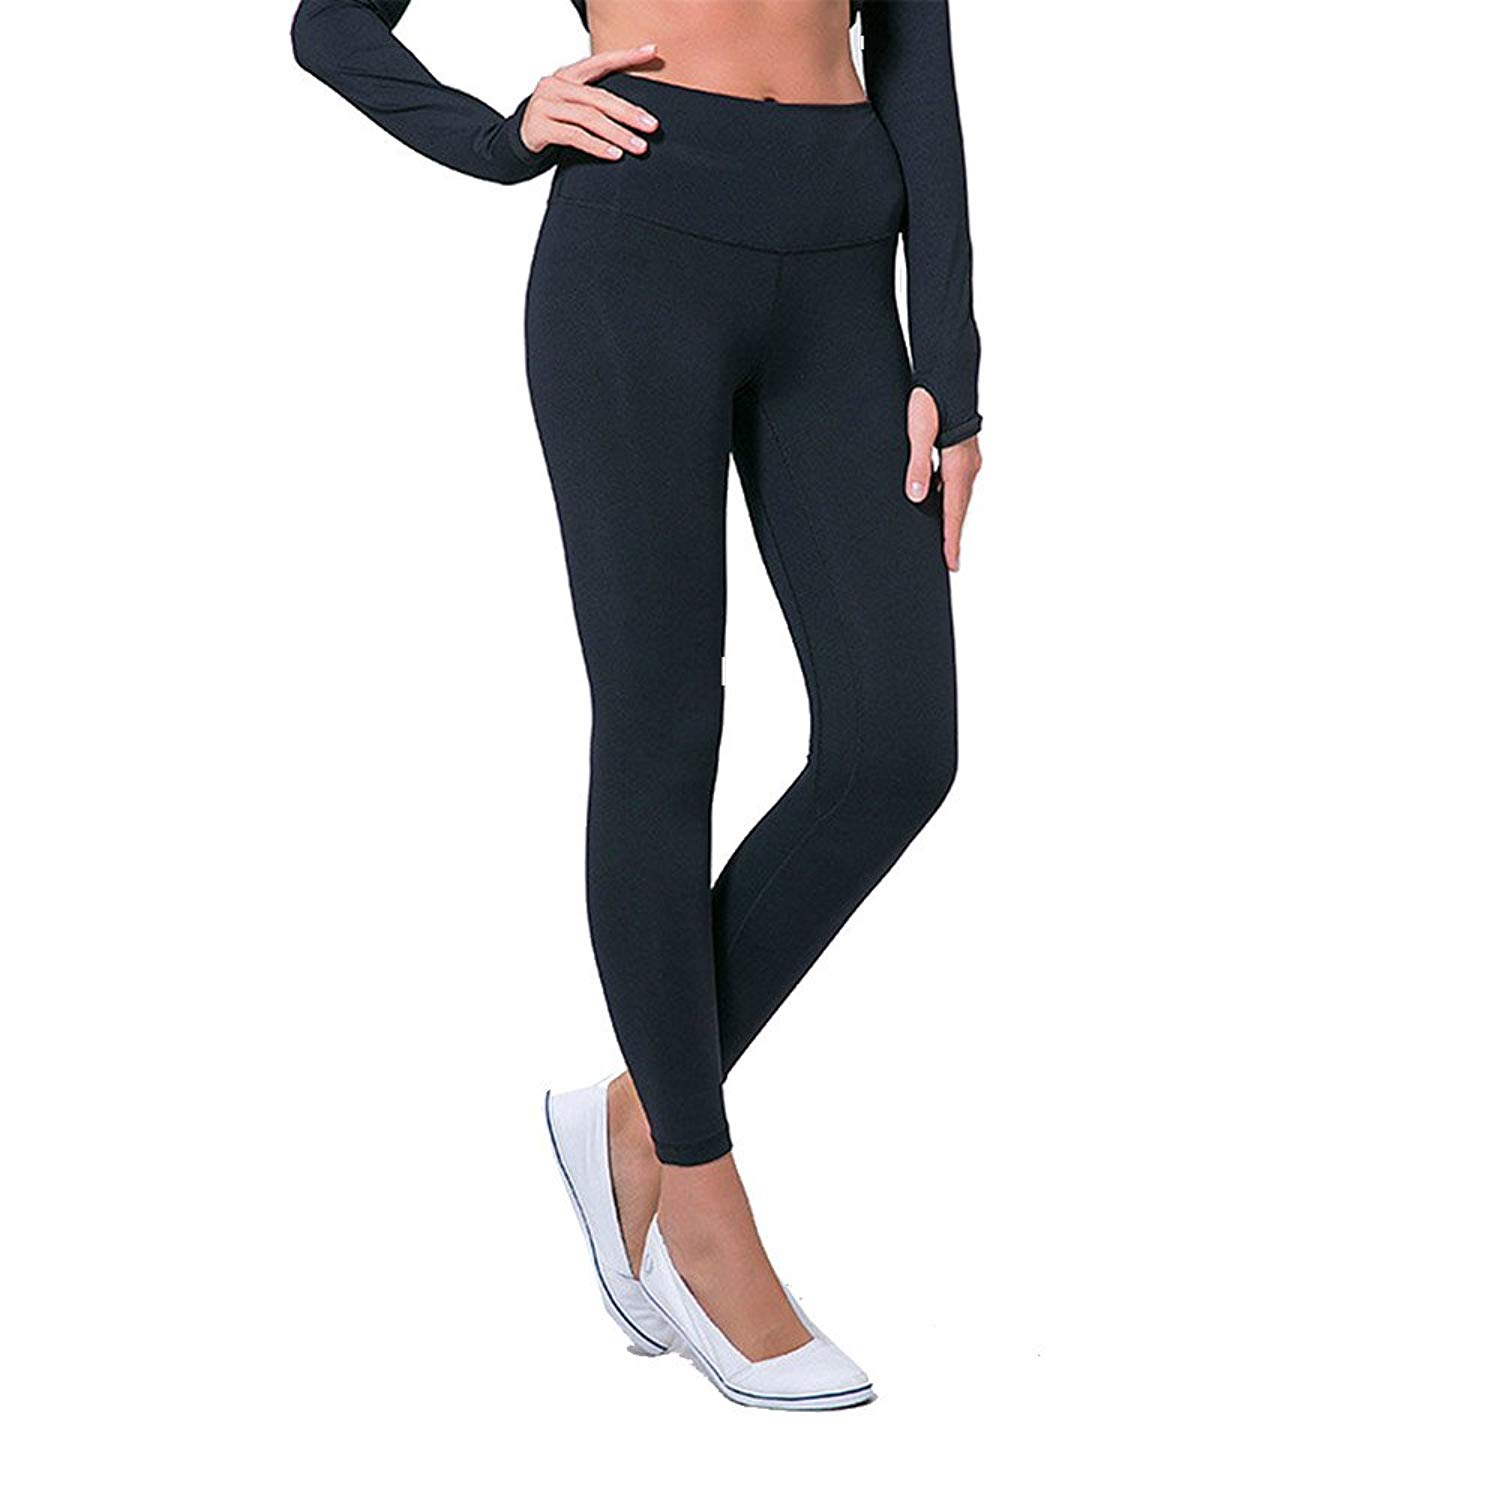 962944225466c2 Get Quotations · MCOUW Anti-Sweat Mention Hip Sport Gym Leggings Women High  Waisted Yoga Fitness Pants Seamless